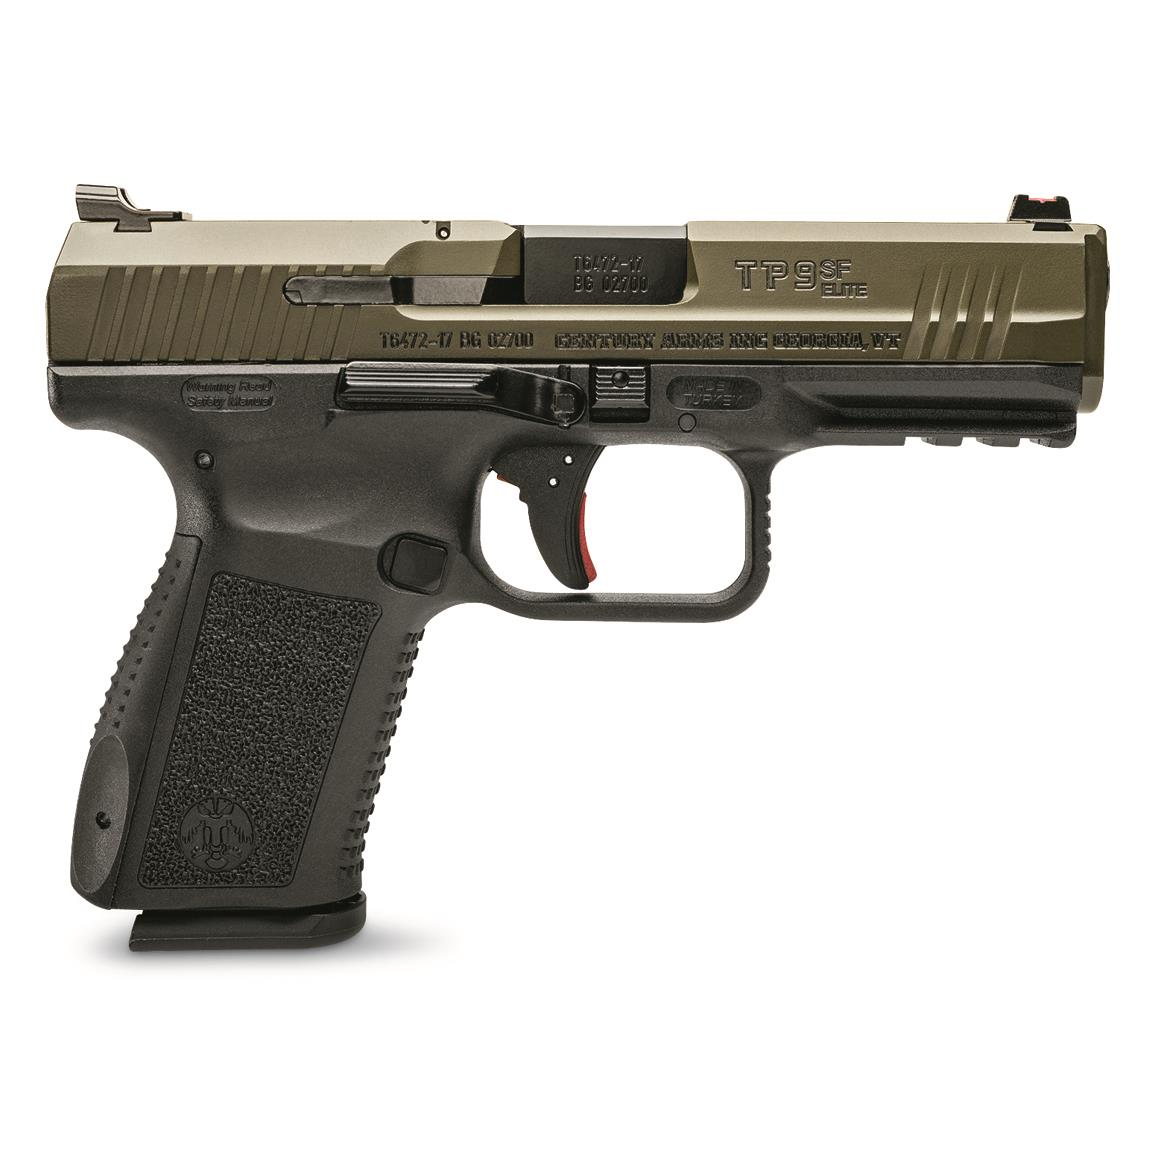 "Century Arms Canik TP9SF Elite, Semi-Automatic, 9mm, 4.19"" Barrel, ODG Slide, 15+1 Rounds"